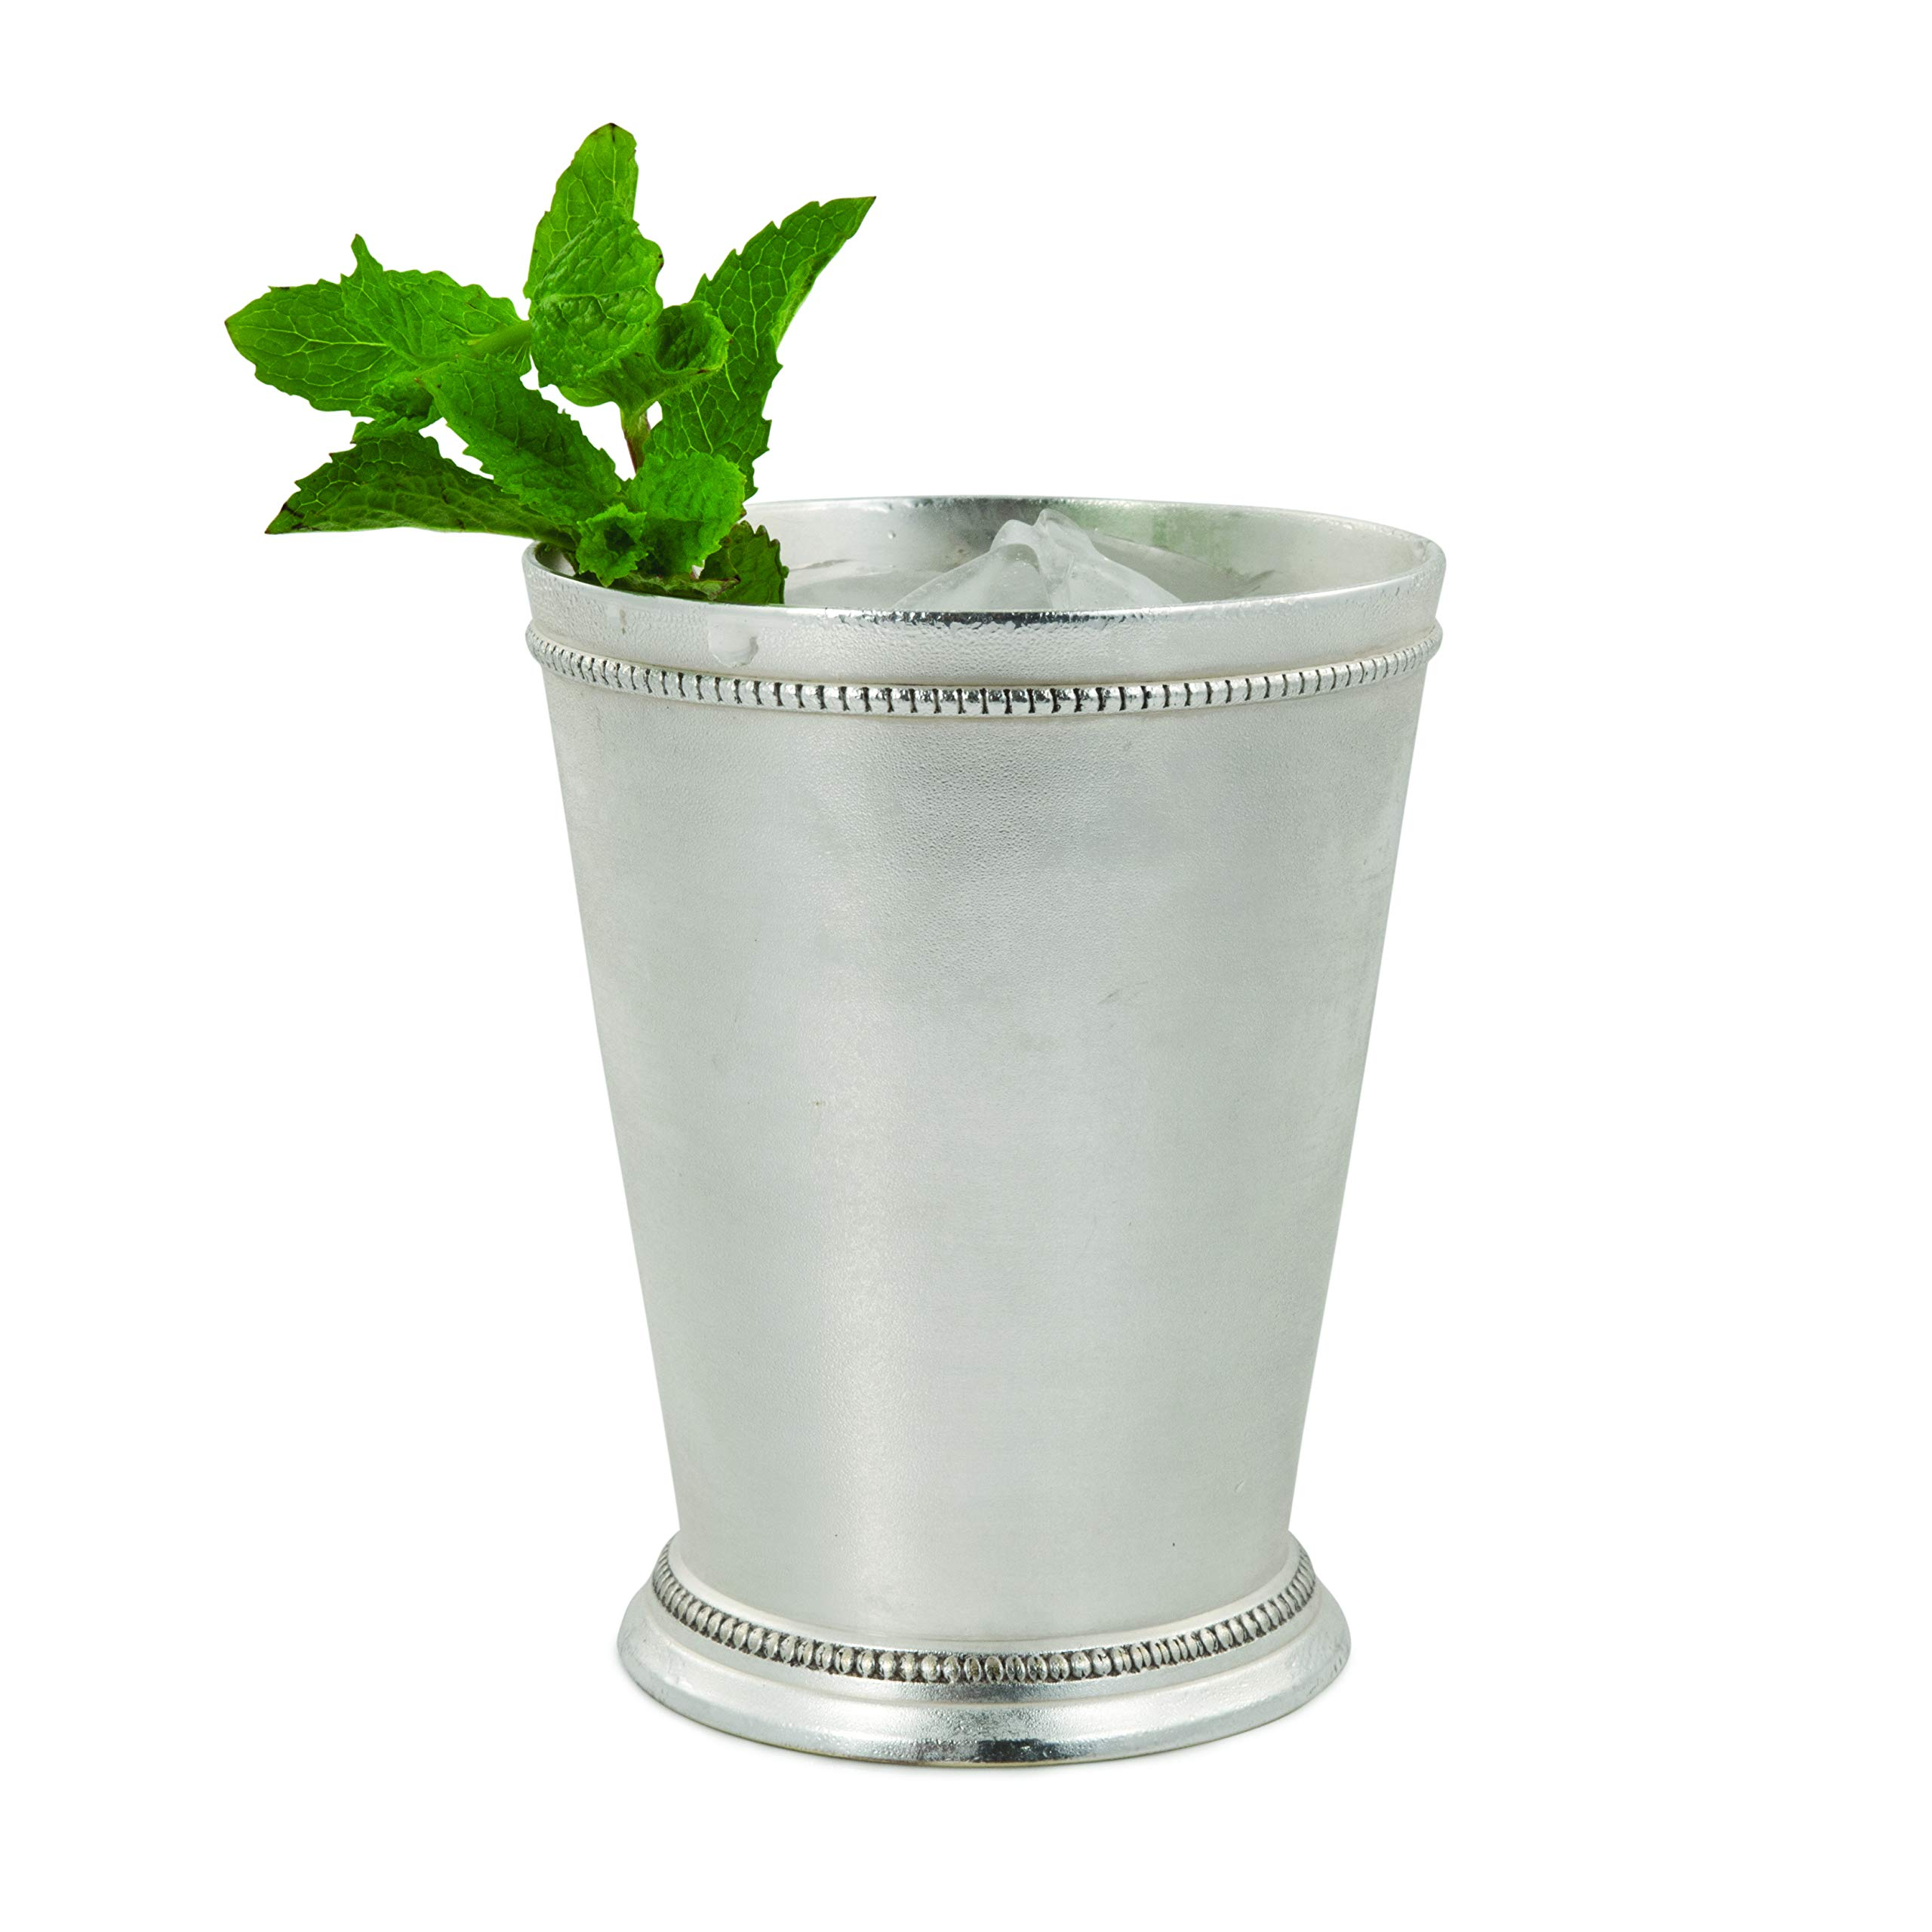 Twine Old Kentucky Home: Mint Julep Cup, Silver